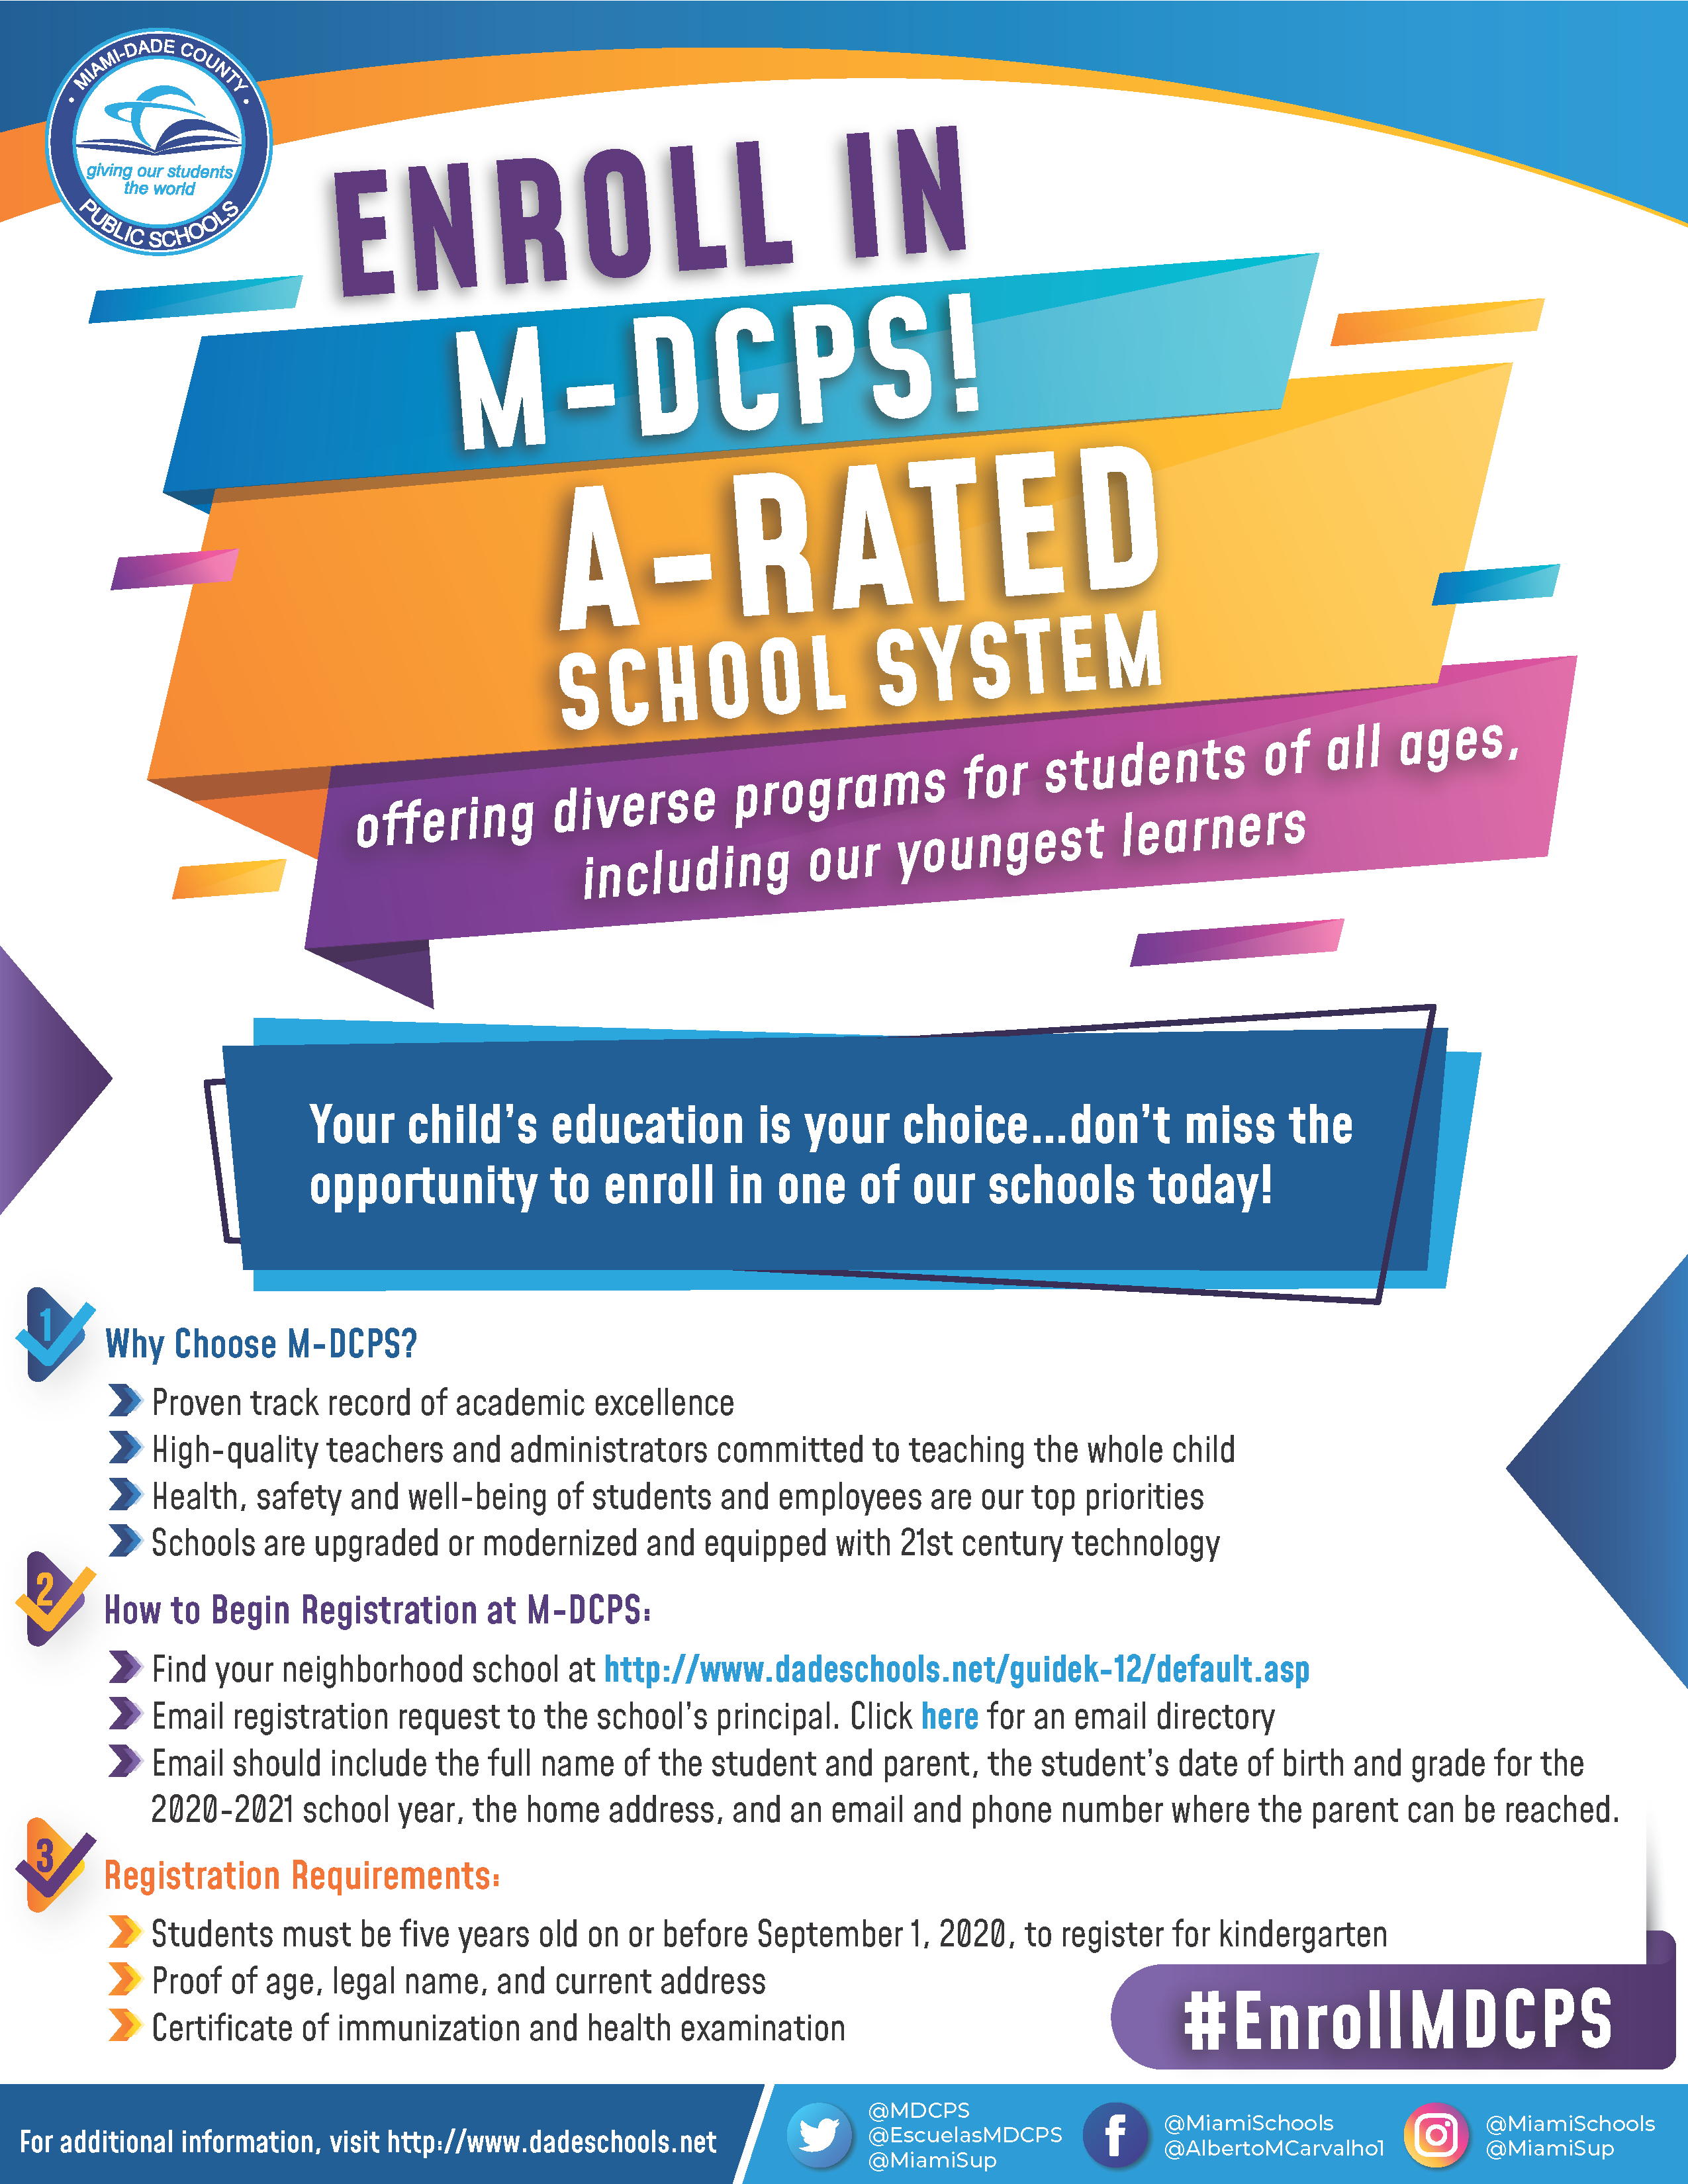 Enroll in M-DCPS Day Flyer